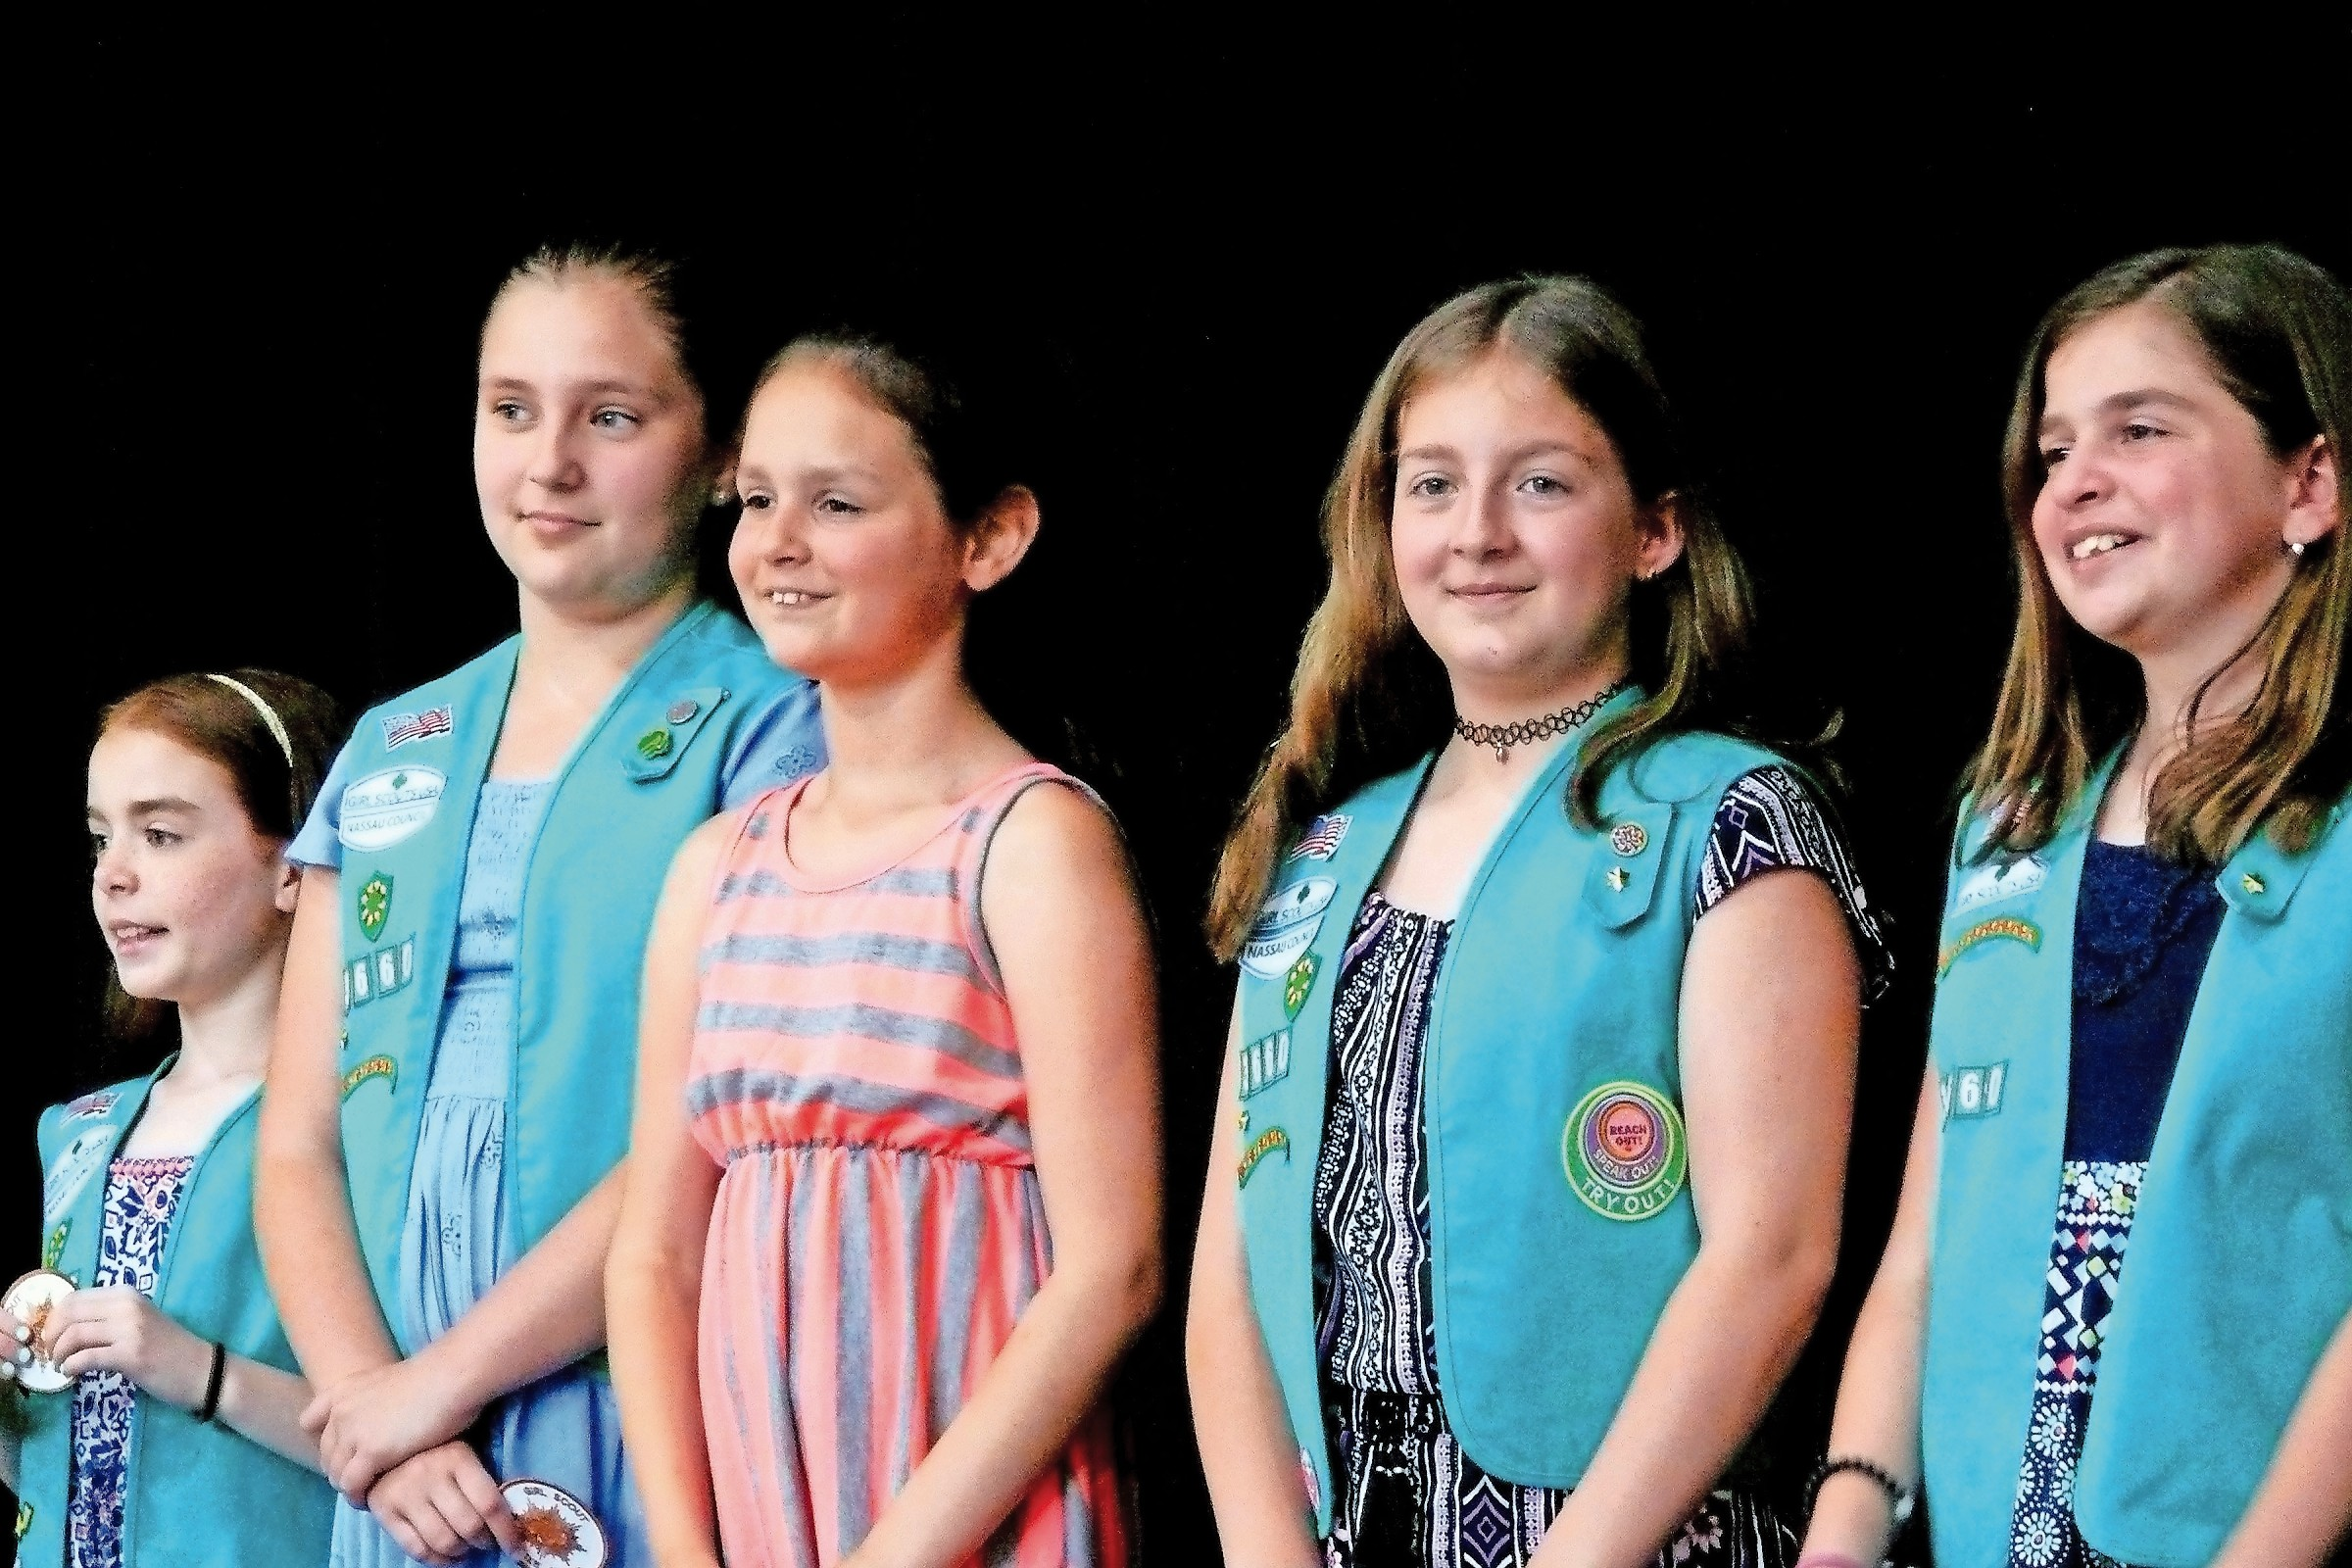 Bronze Award winners from Troop 3660 prepared to take a bow.